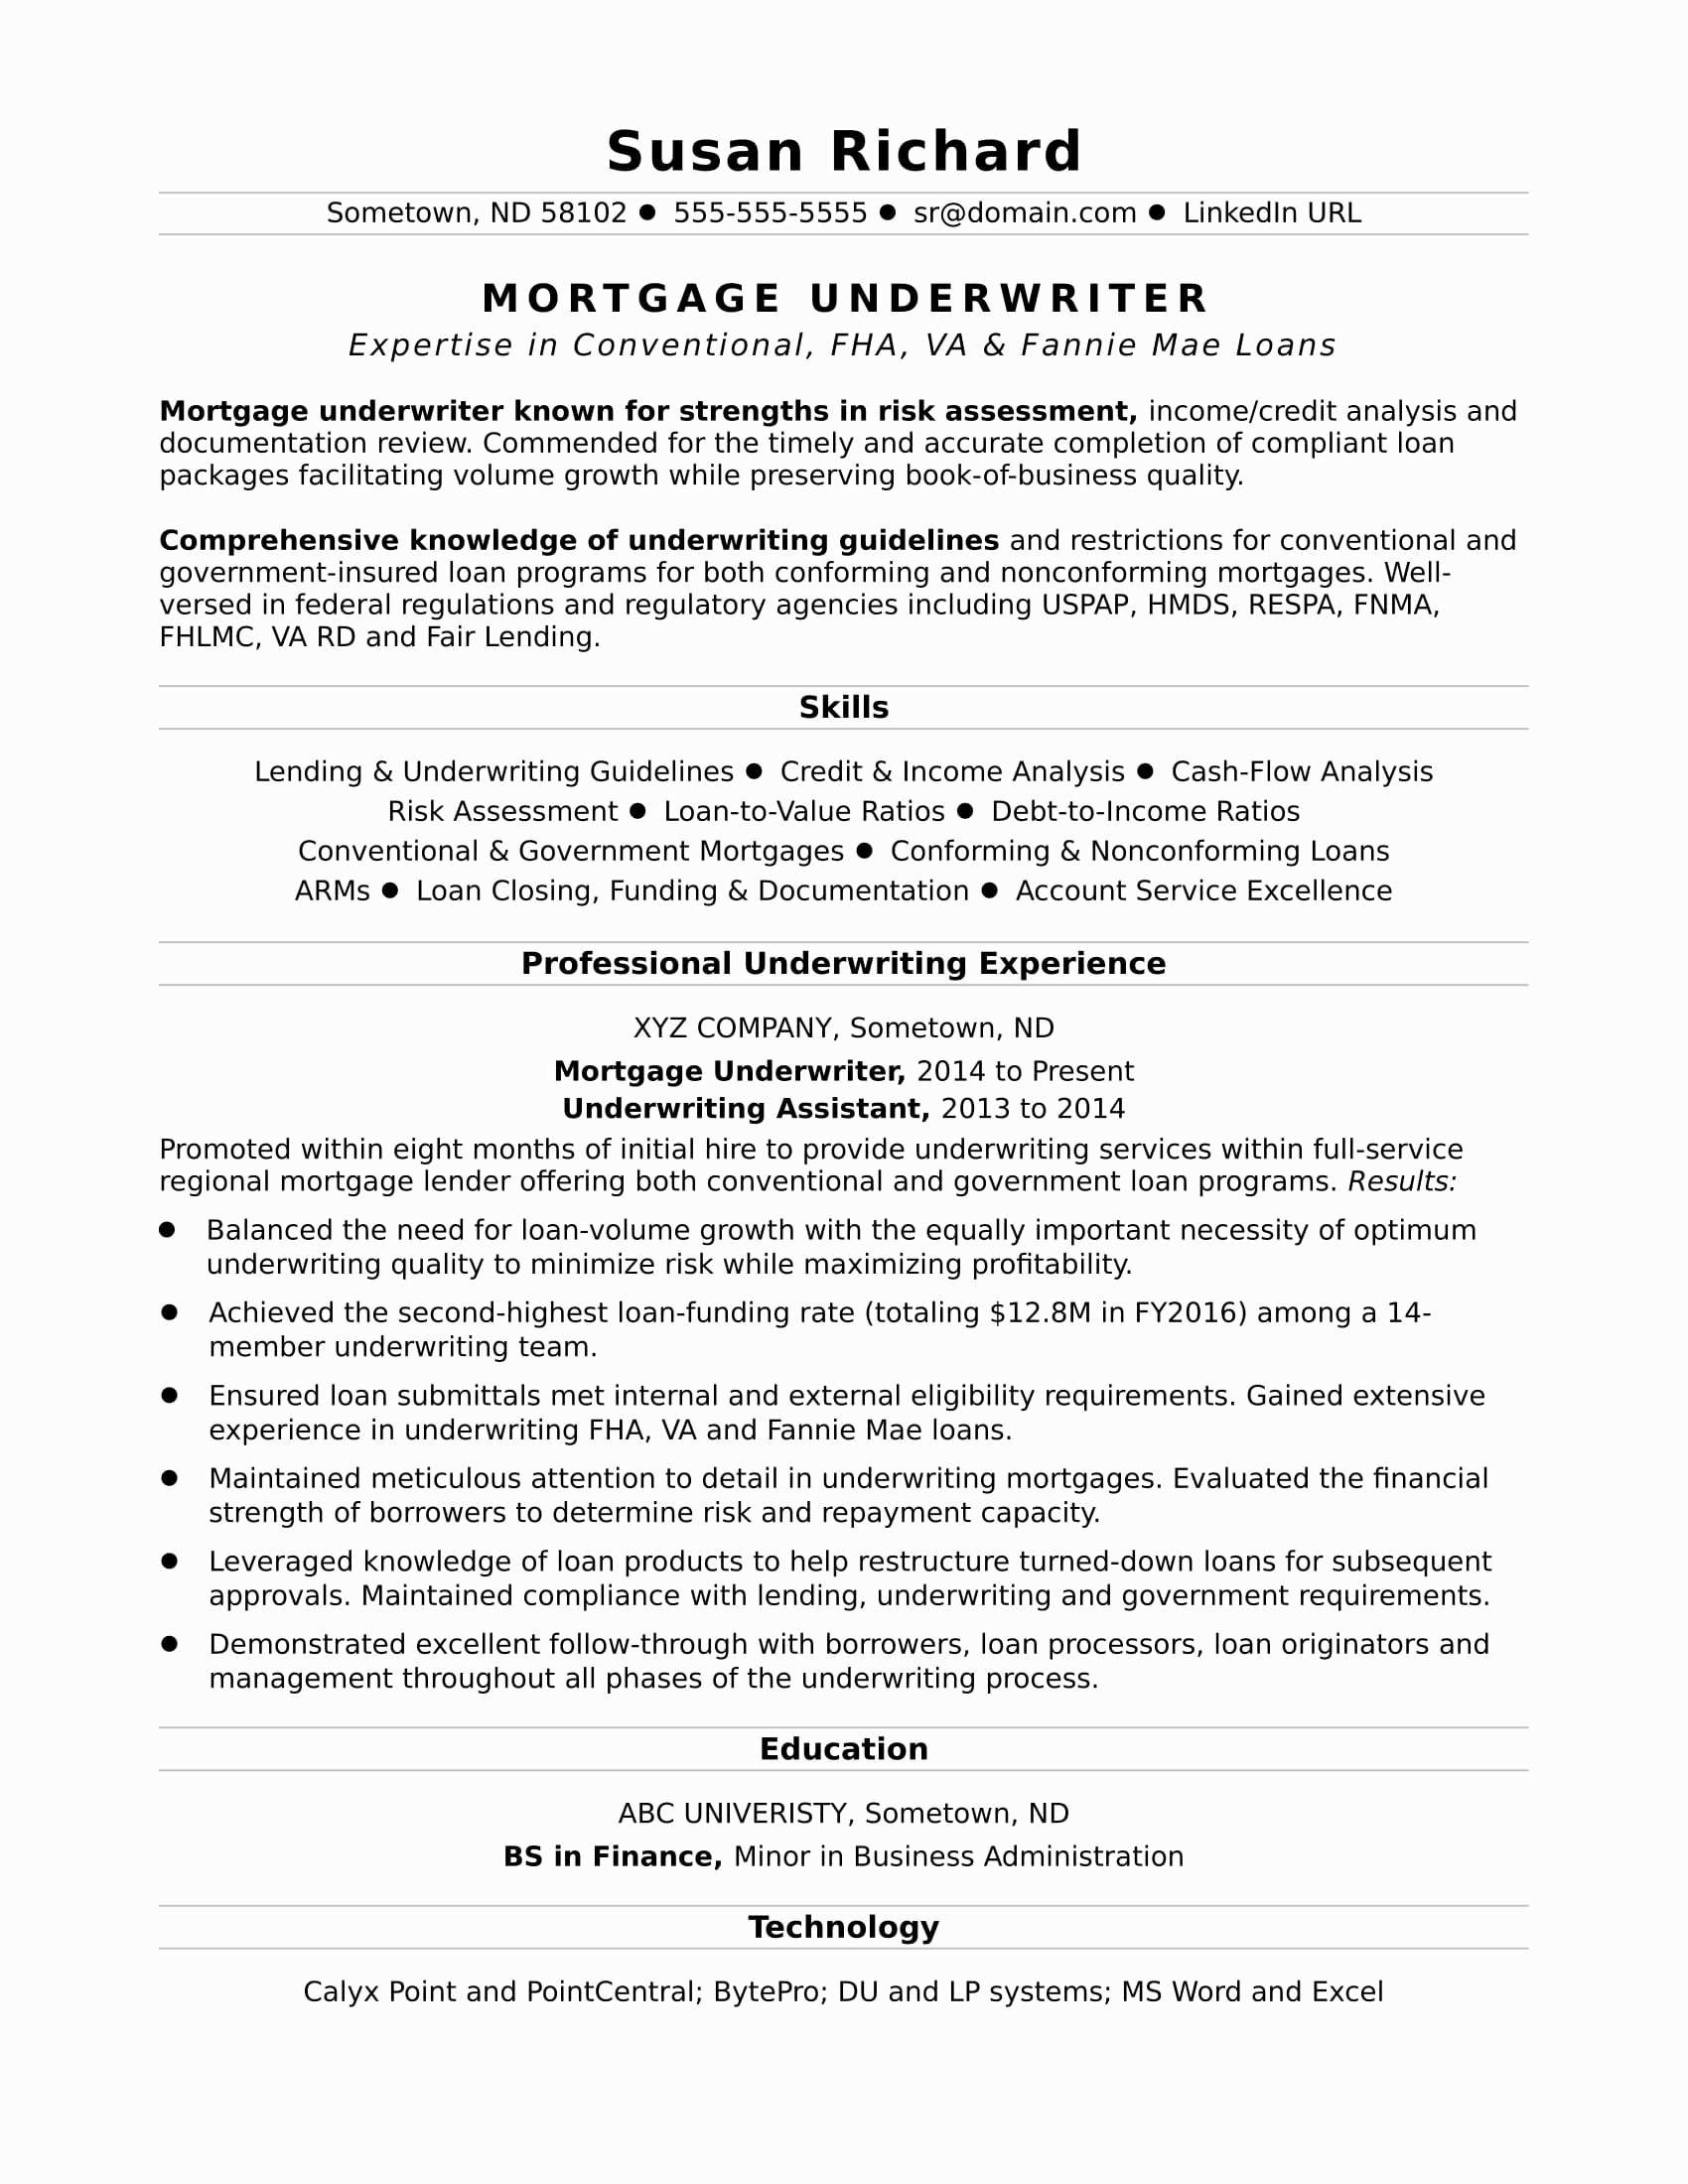 Microsoft Cover Letter Template - Teaching Resume Cover Letter New Sample Cover Letter Template Lovely